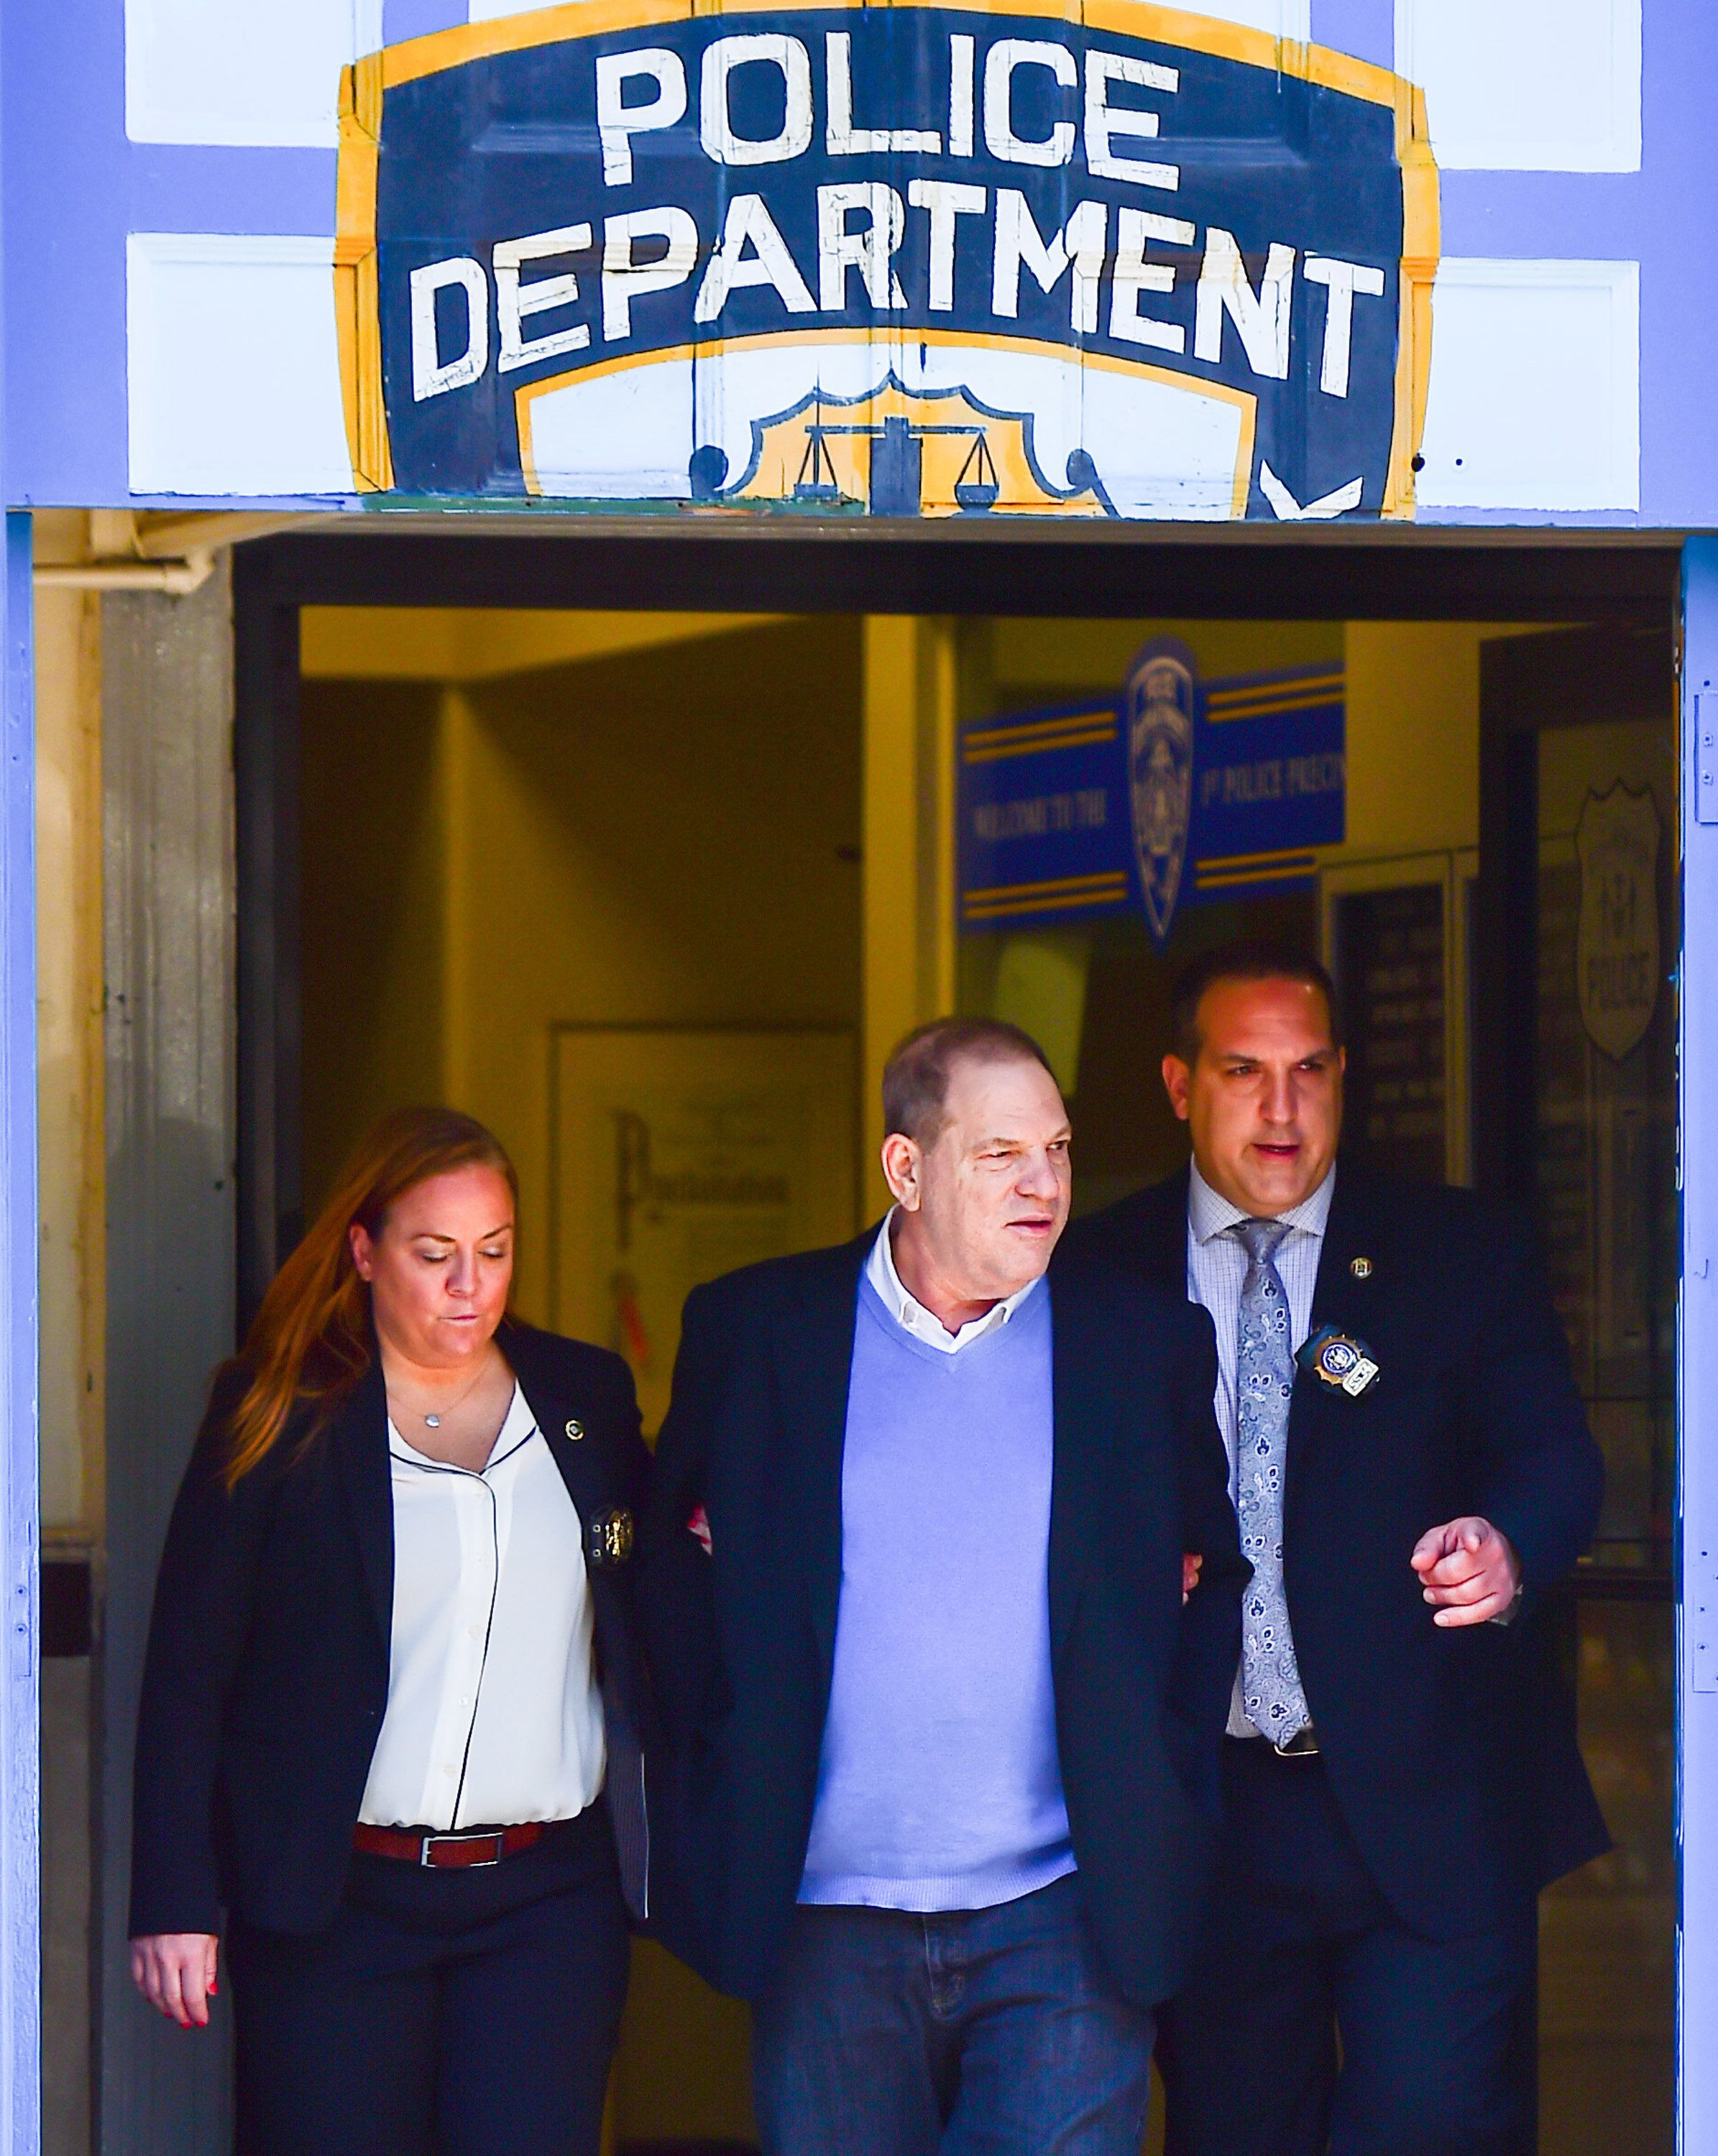 Harvey Weinstein is escorted out of the New York Police Department's First Precinct in handcuffs after turning himself in on Friday